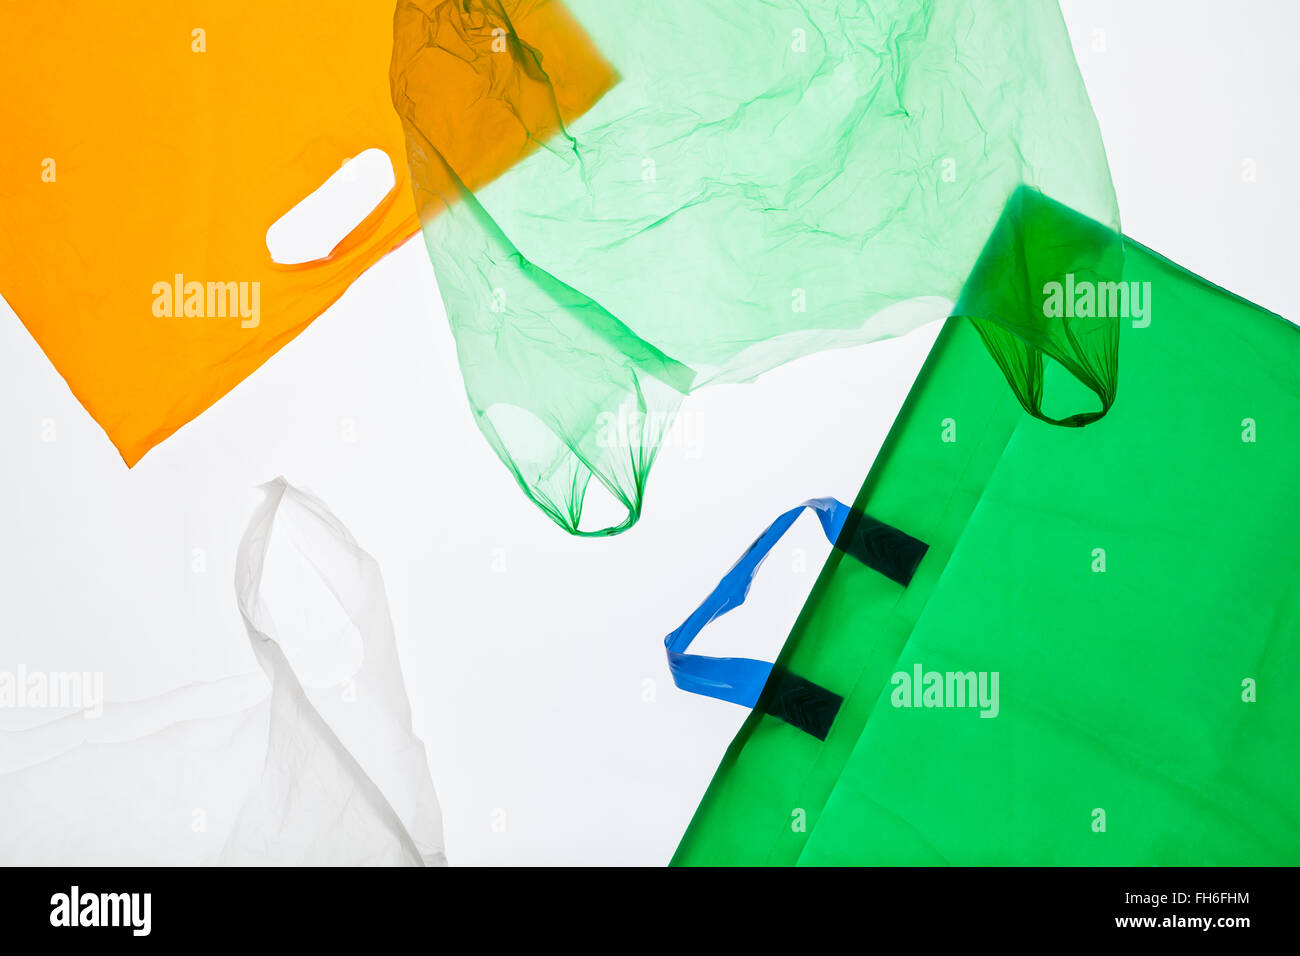 Different plastic bags - Stock Image